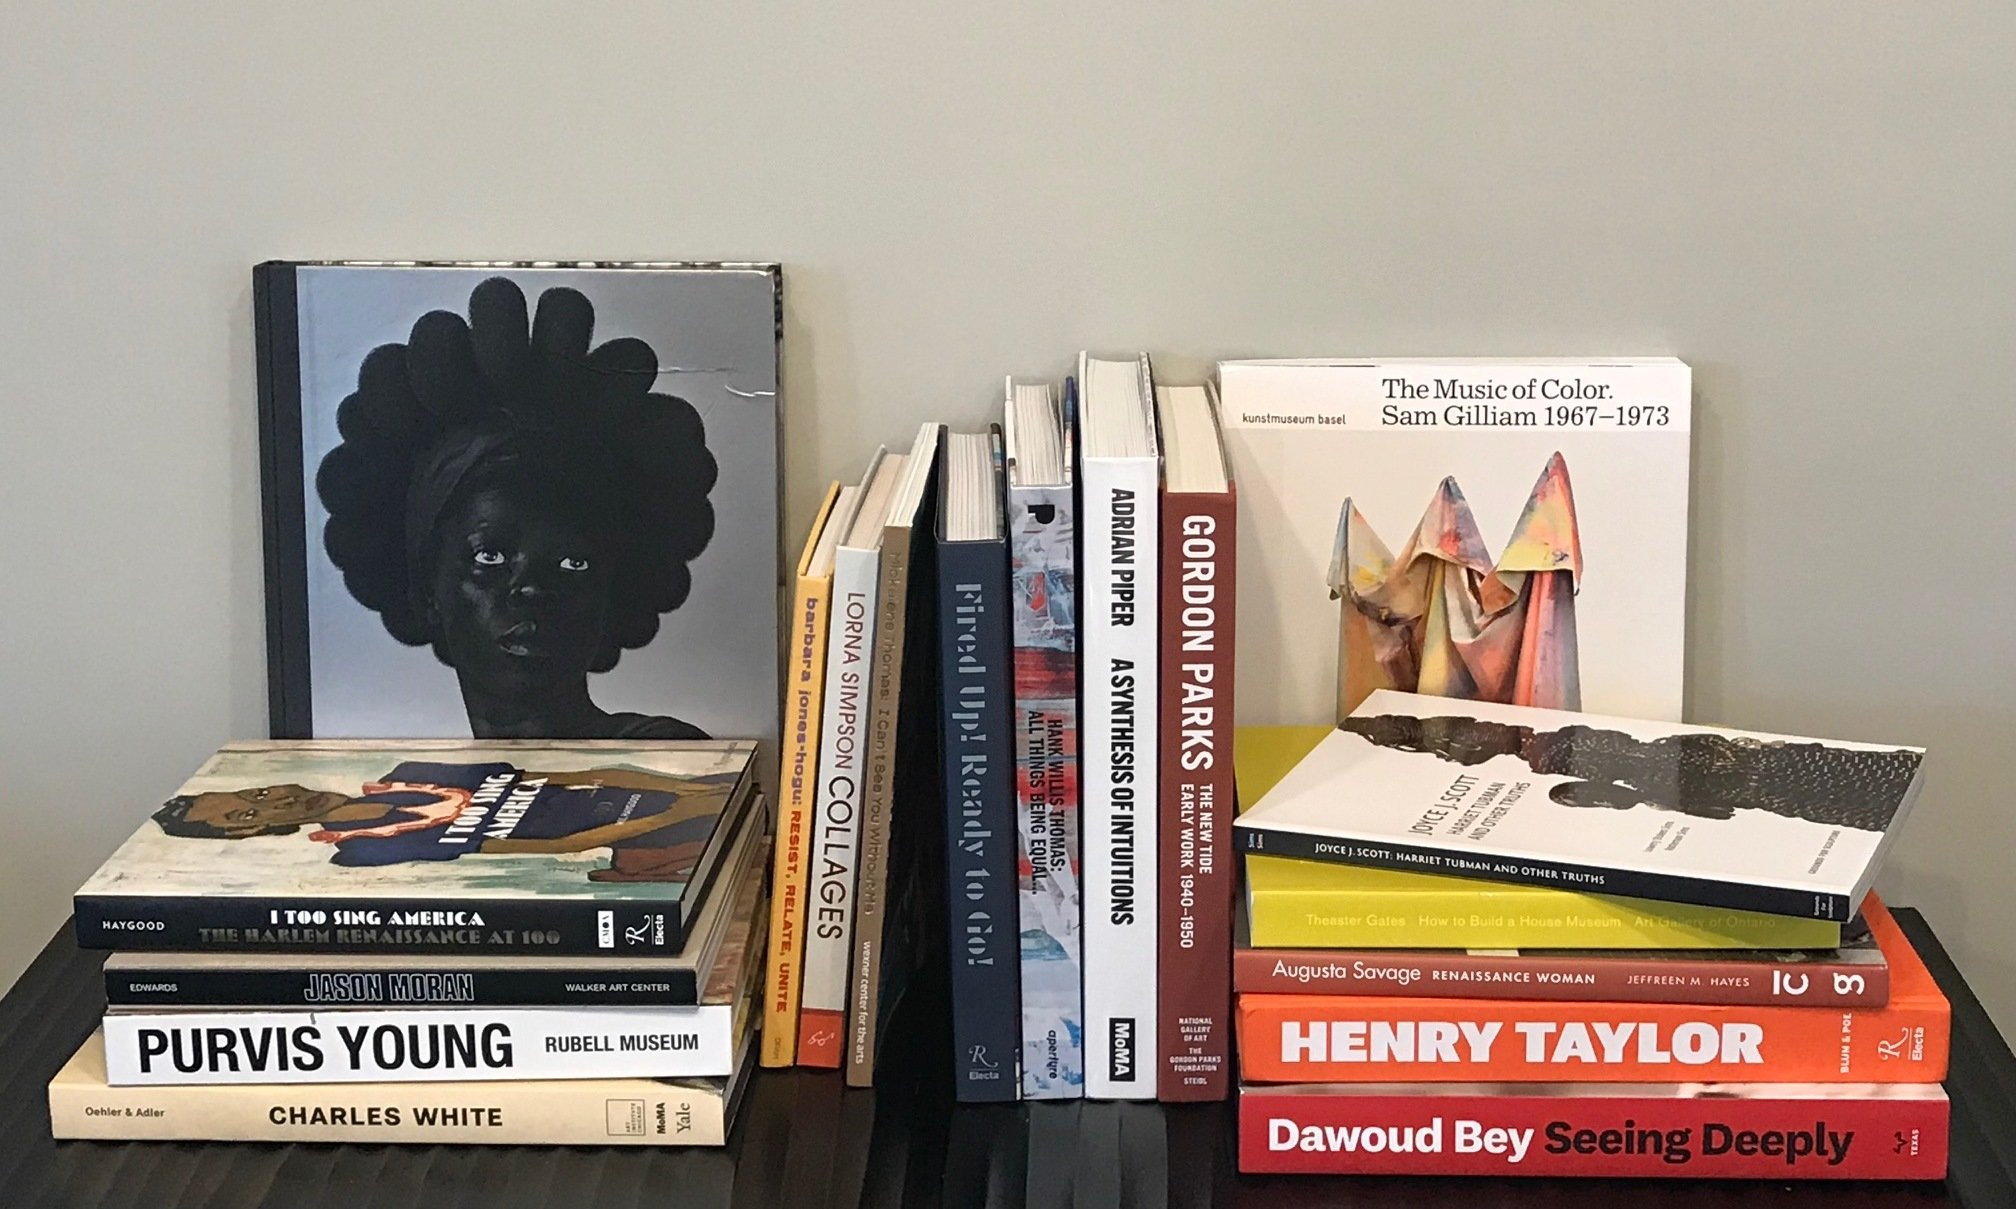 Four Foundations Acquired Johnson Publishing Archive for $30